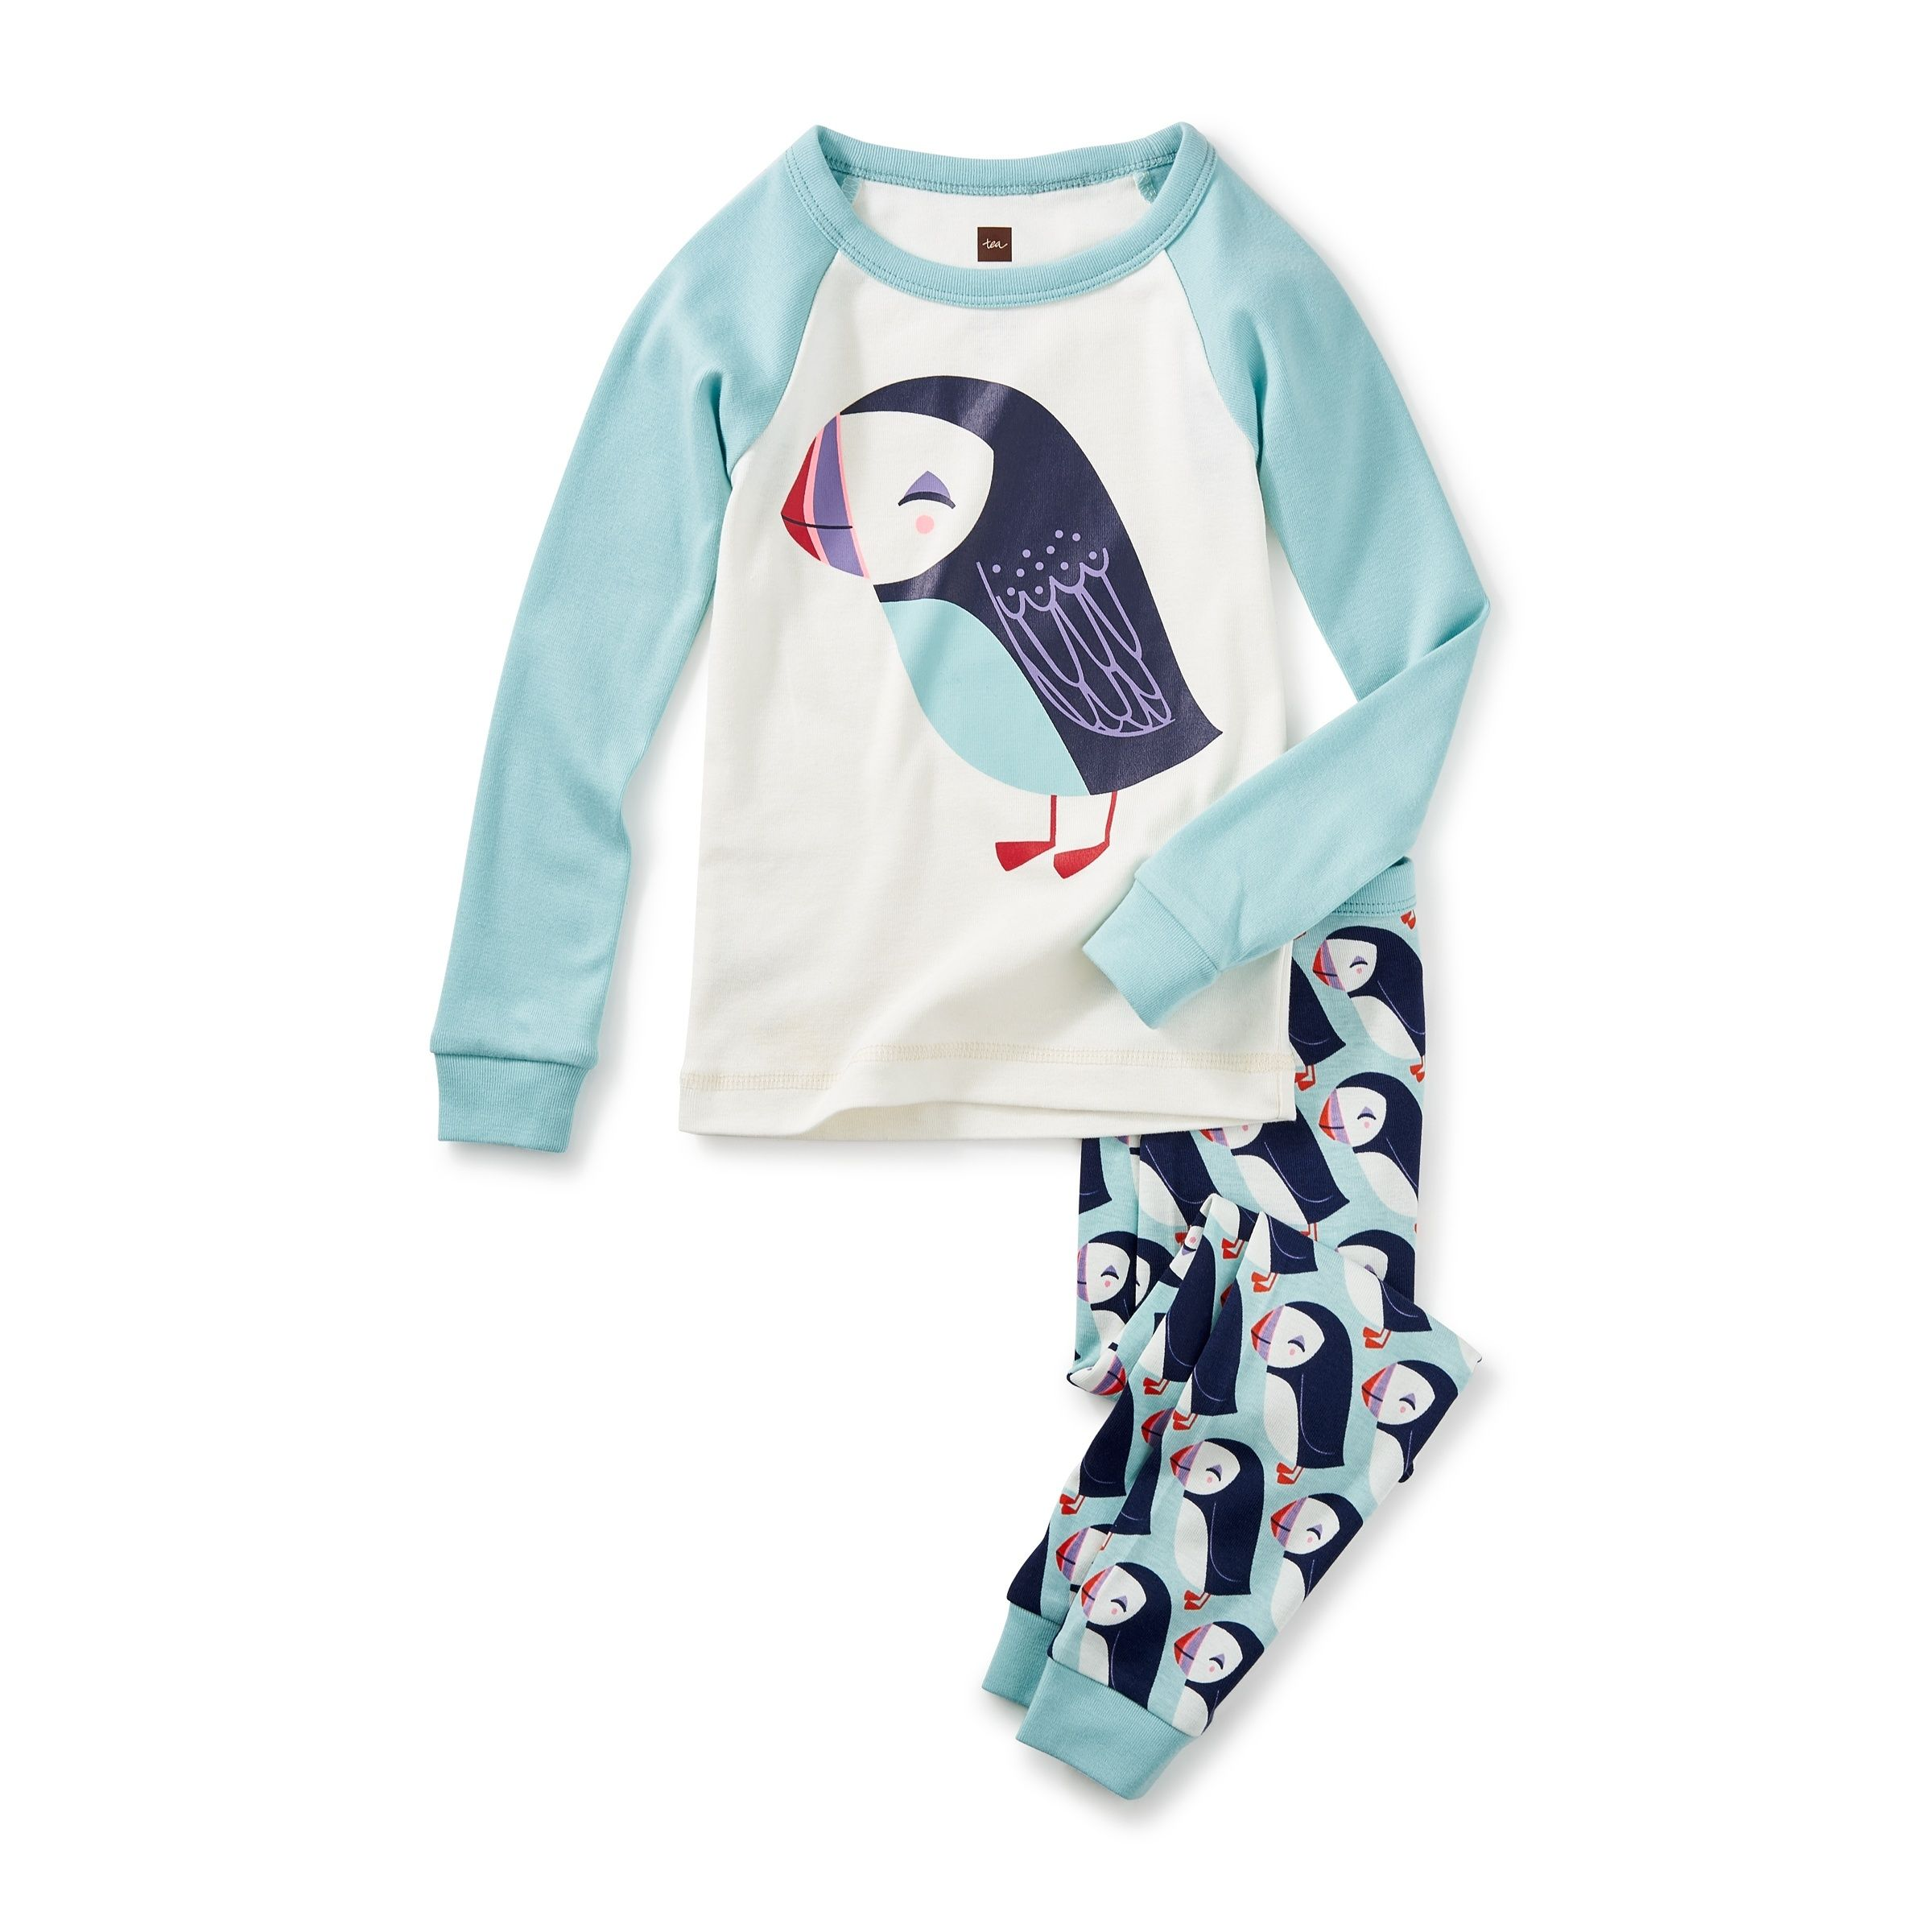 "ef76f0c12 Often called the ""clown of the sea"", the puffin is an adorable seabird with  a bright bill and irresistible waddle. Our signature PJs couldn't get any  ..."